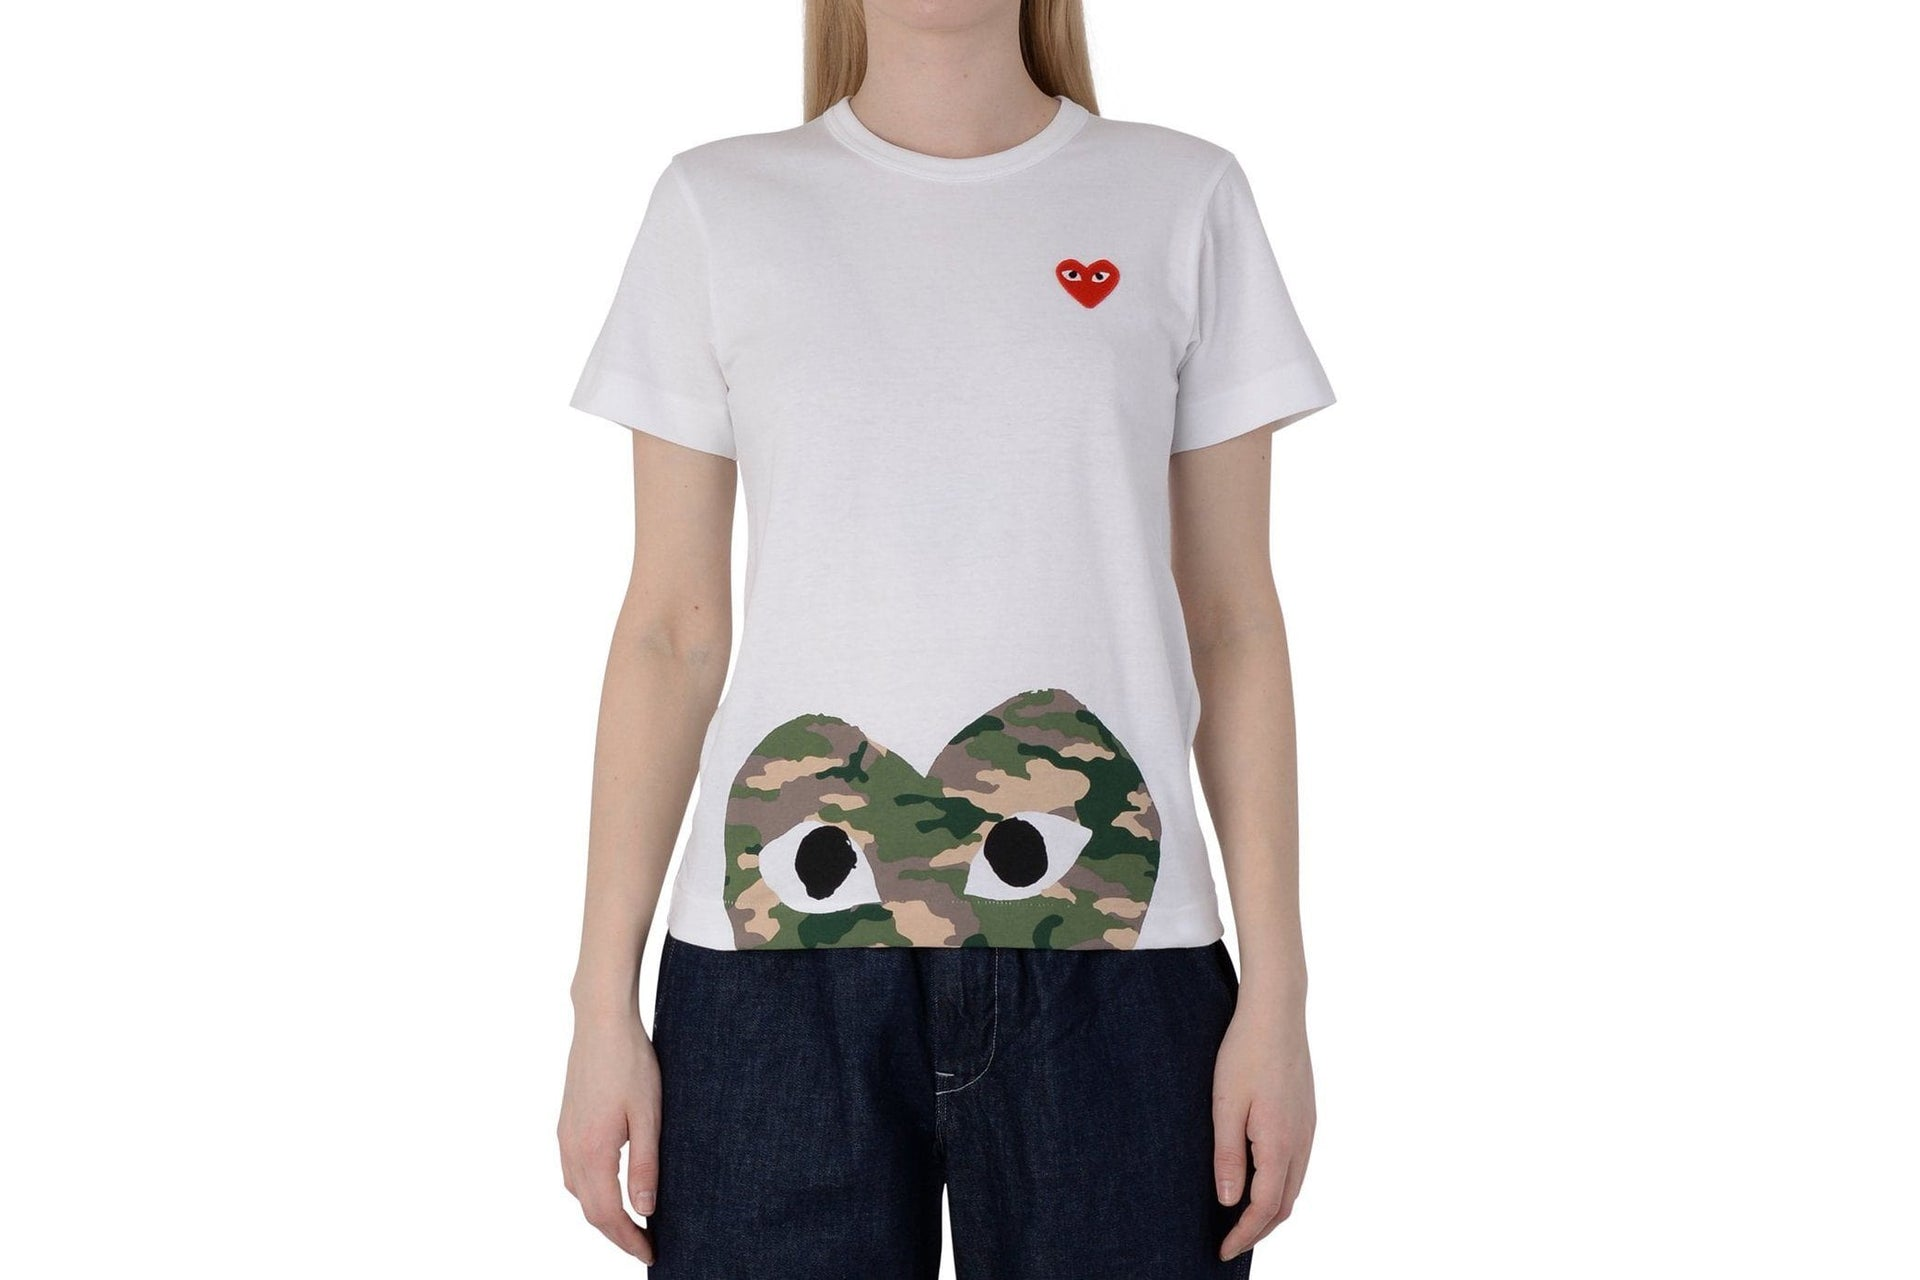 SMALL RED HEART/BIG CAMO HEART BOTTOM WOMENS SOFTGOODS COMME DES GARCONS